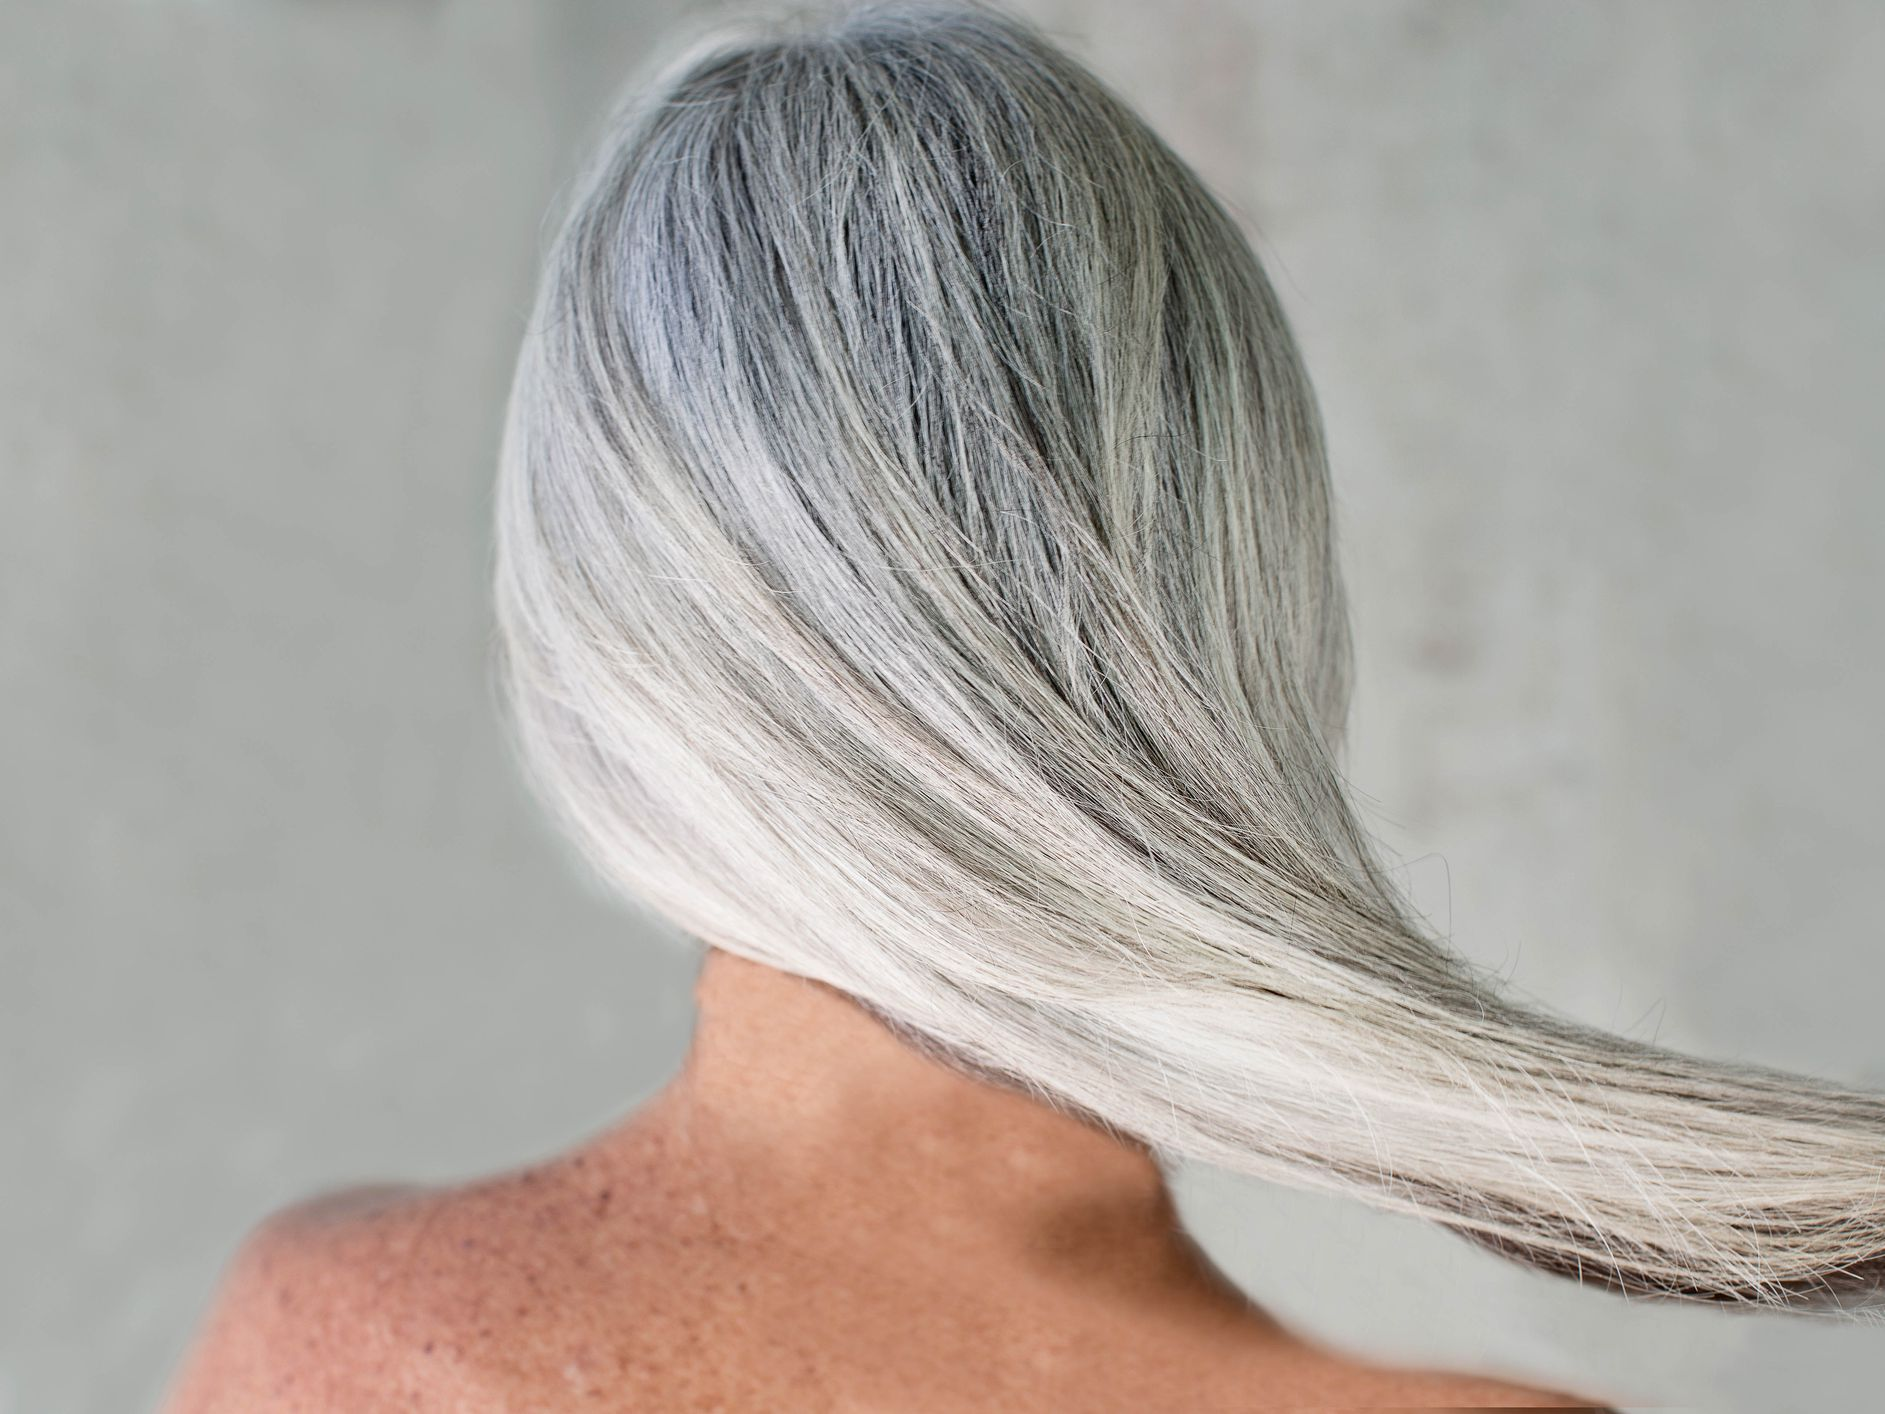 Gone Gray? How to Care for Your Hair